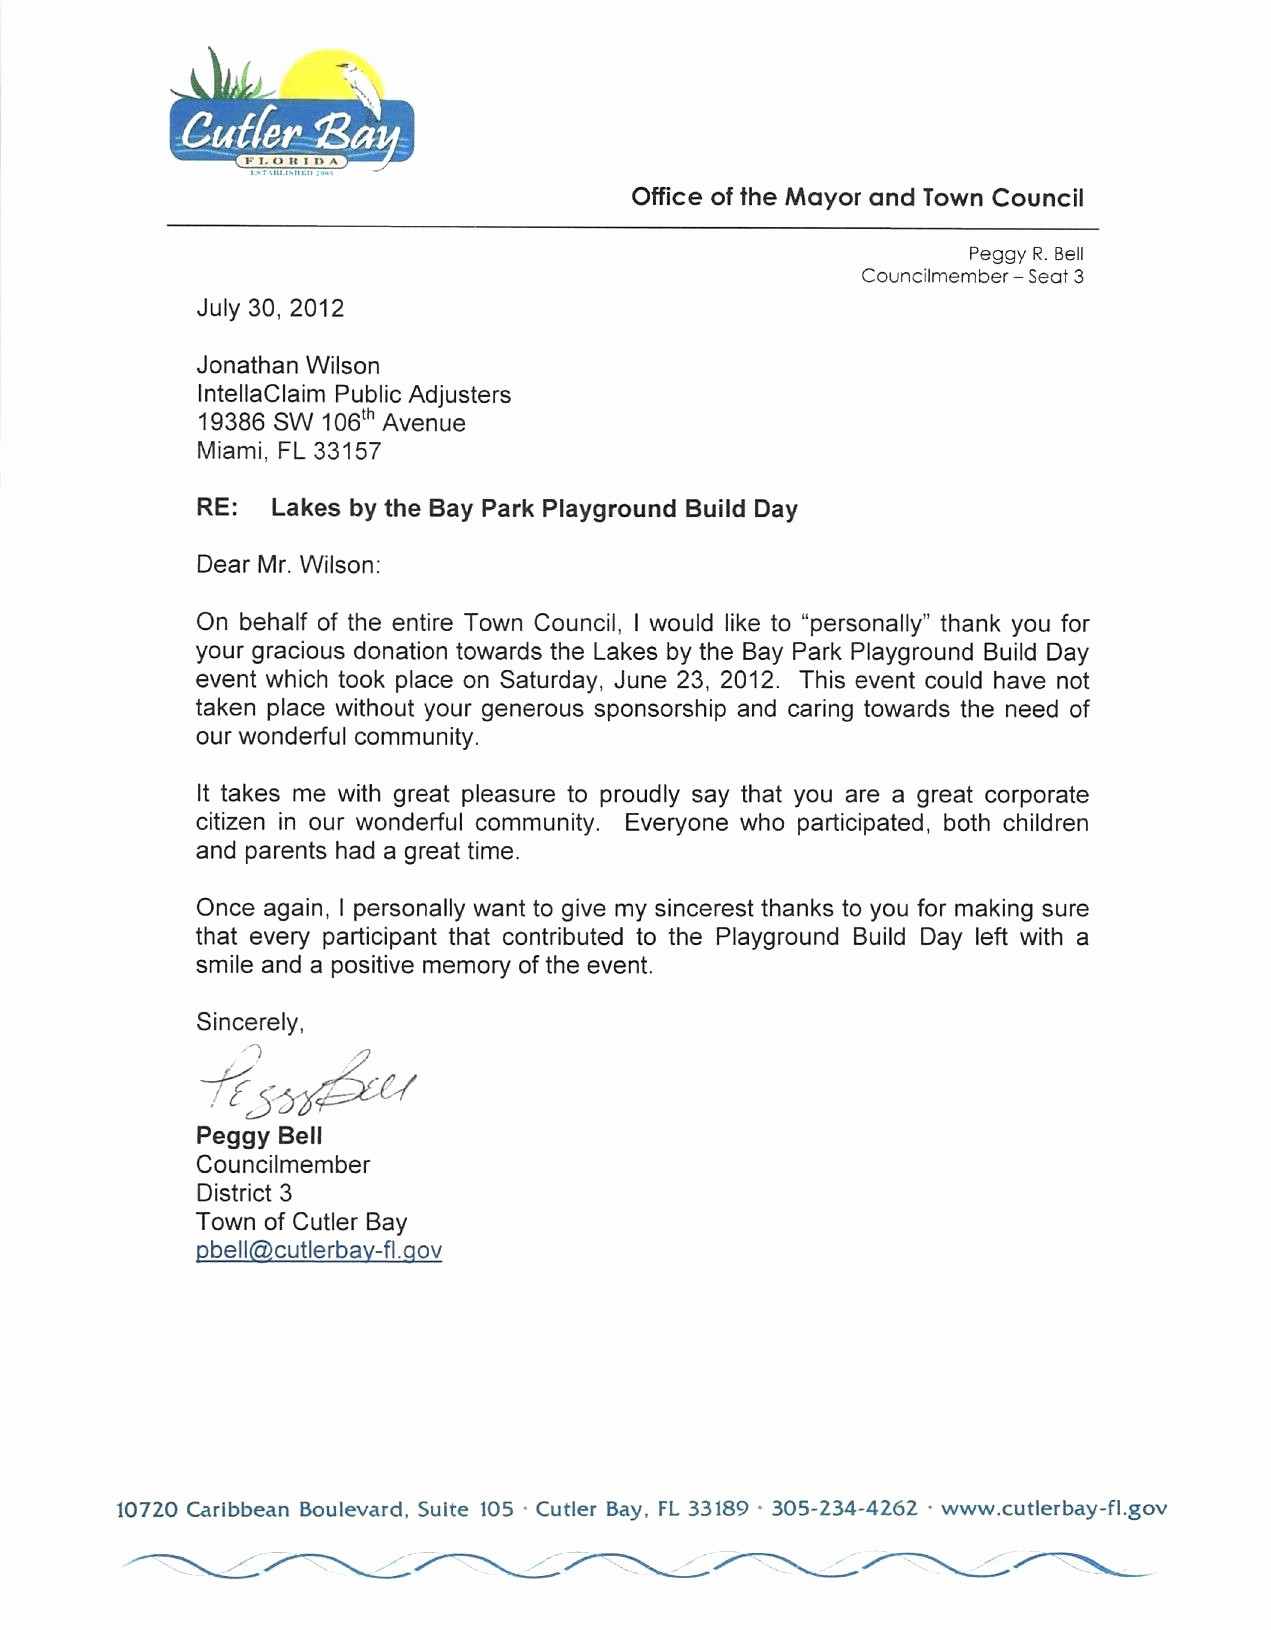 Police Officer Cover Letter Template - Recordplayerorchestra Free Resume Template